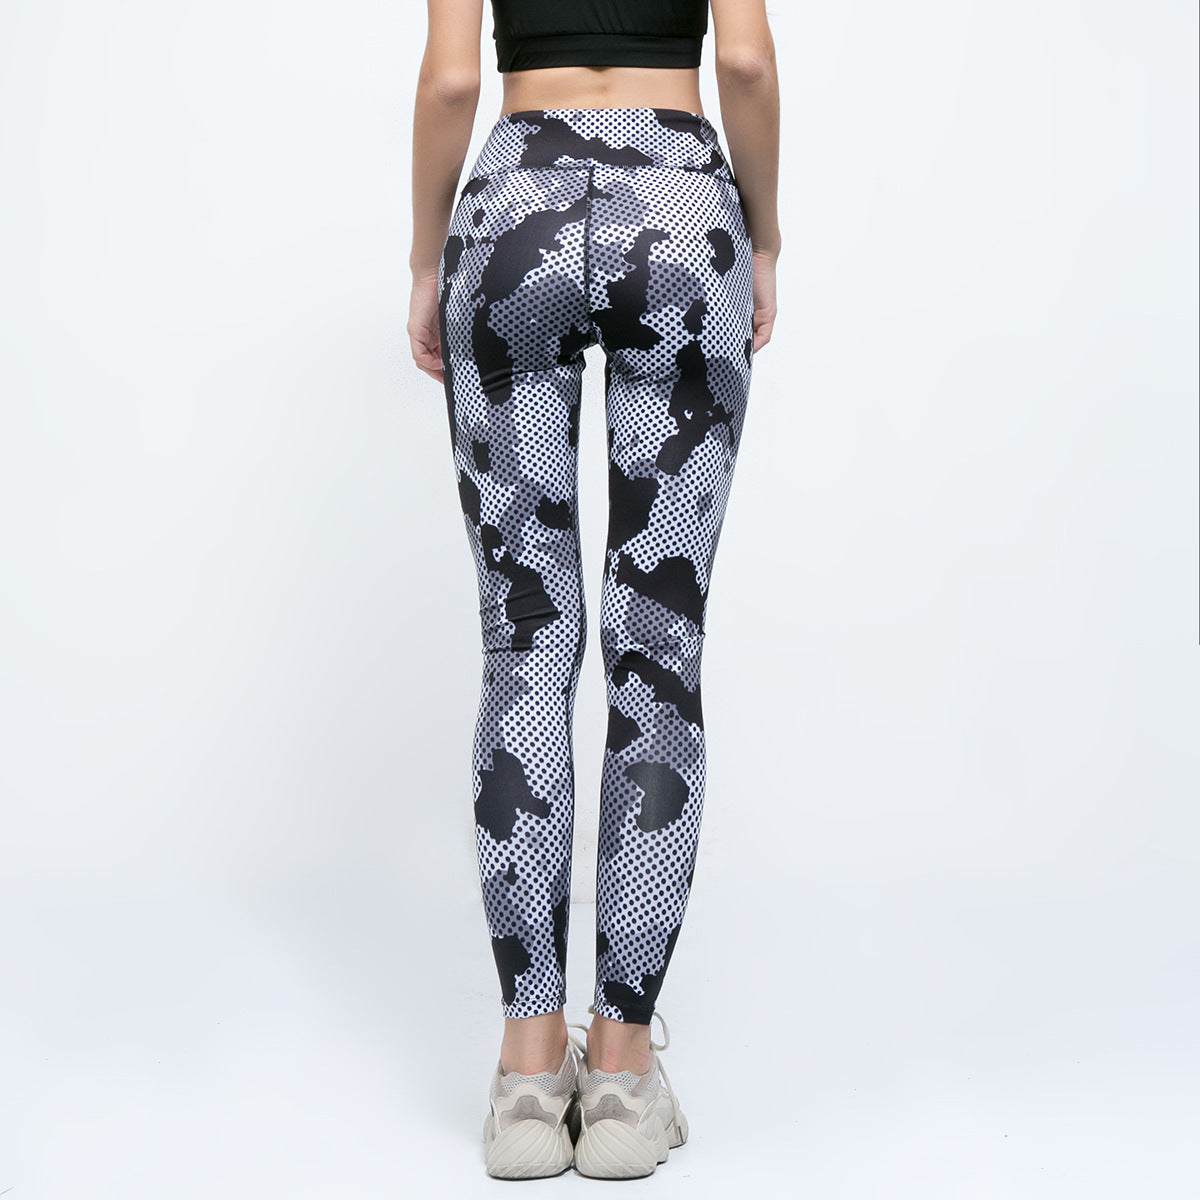 Sexy Camouflage Prints Gym Wear Work Out Sportswear Yoga Pants Legging